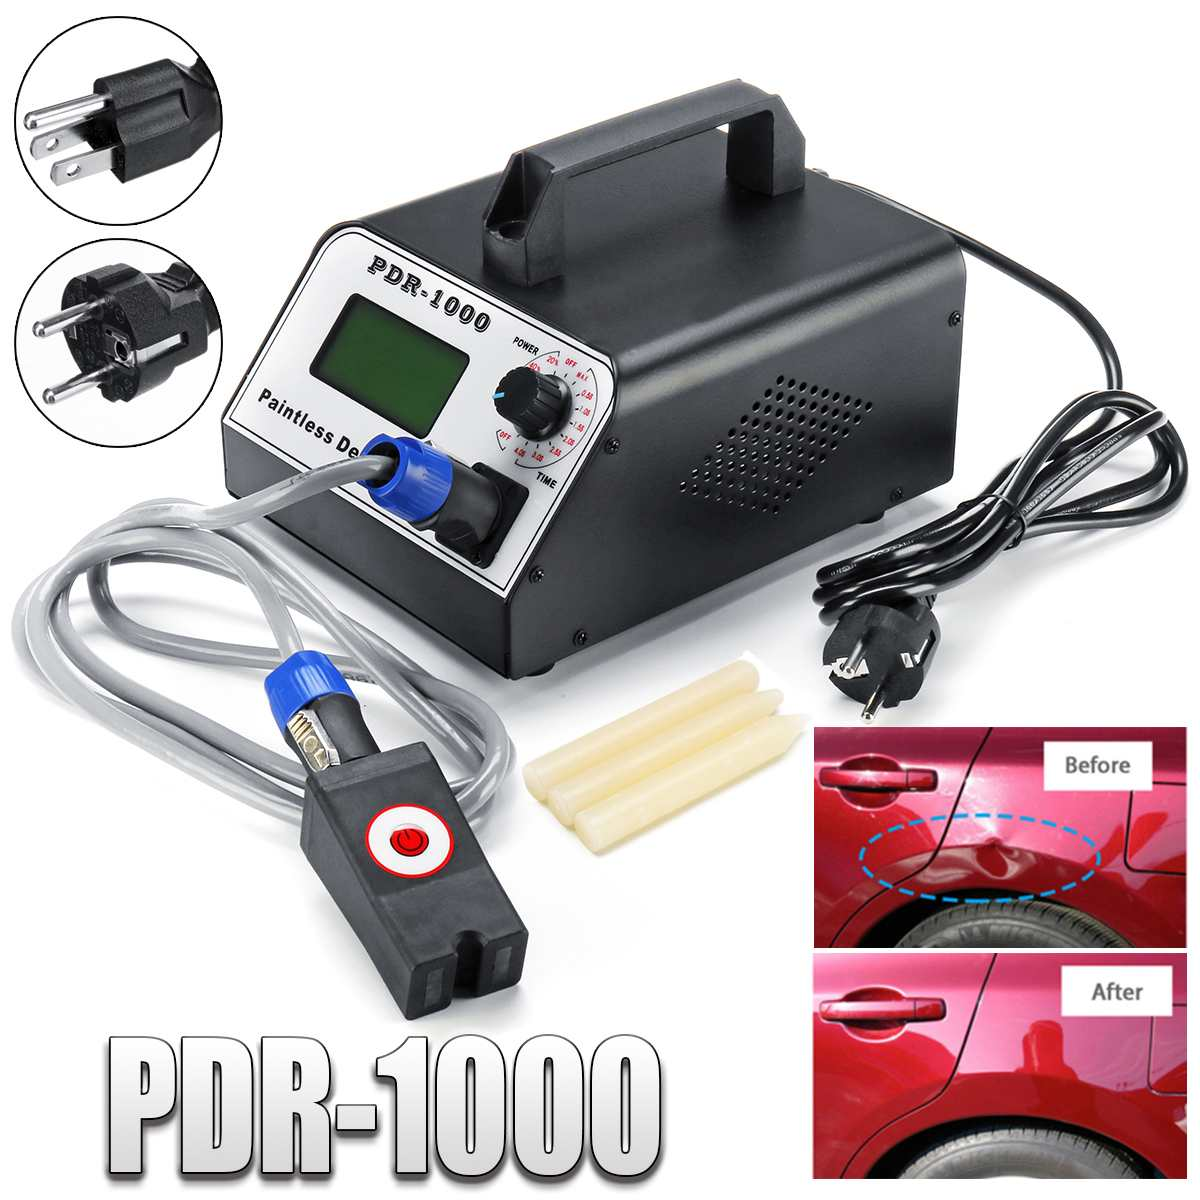 Car Paintless Dent Repair Remover Induction Heater 220V 1000W for Removing Dents Car Body Repair Sheet Metal Tool Sets Hot Box